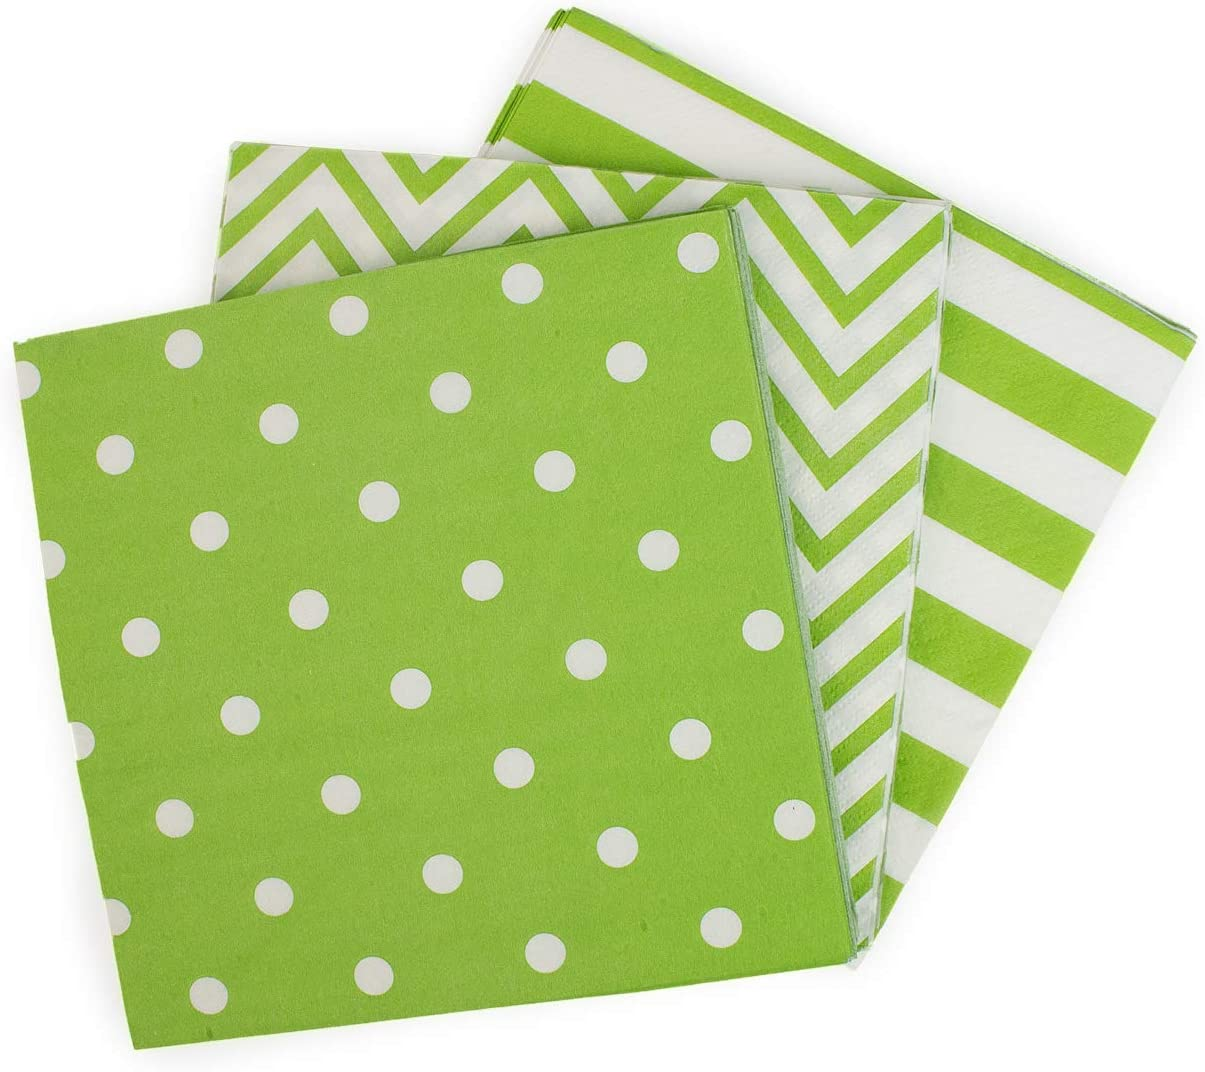 Youmewell Disposable Striped Chevron Polka Dot Green Paper Party Napkins 60 Count